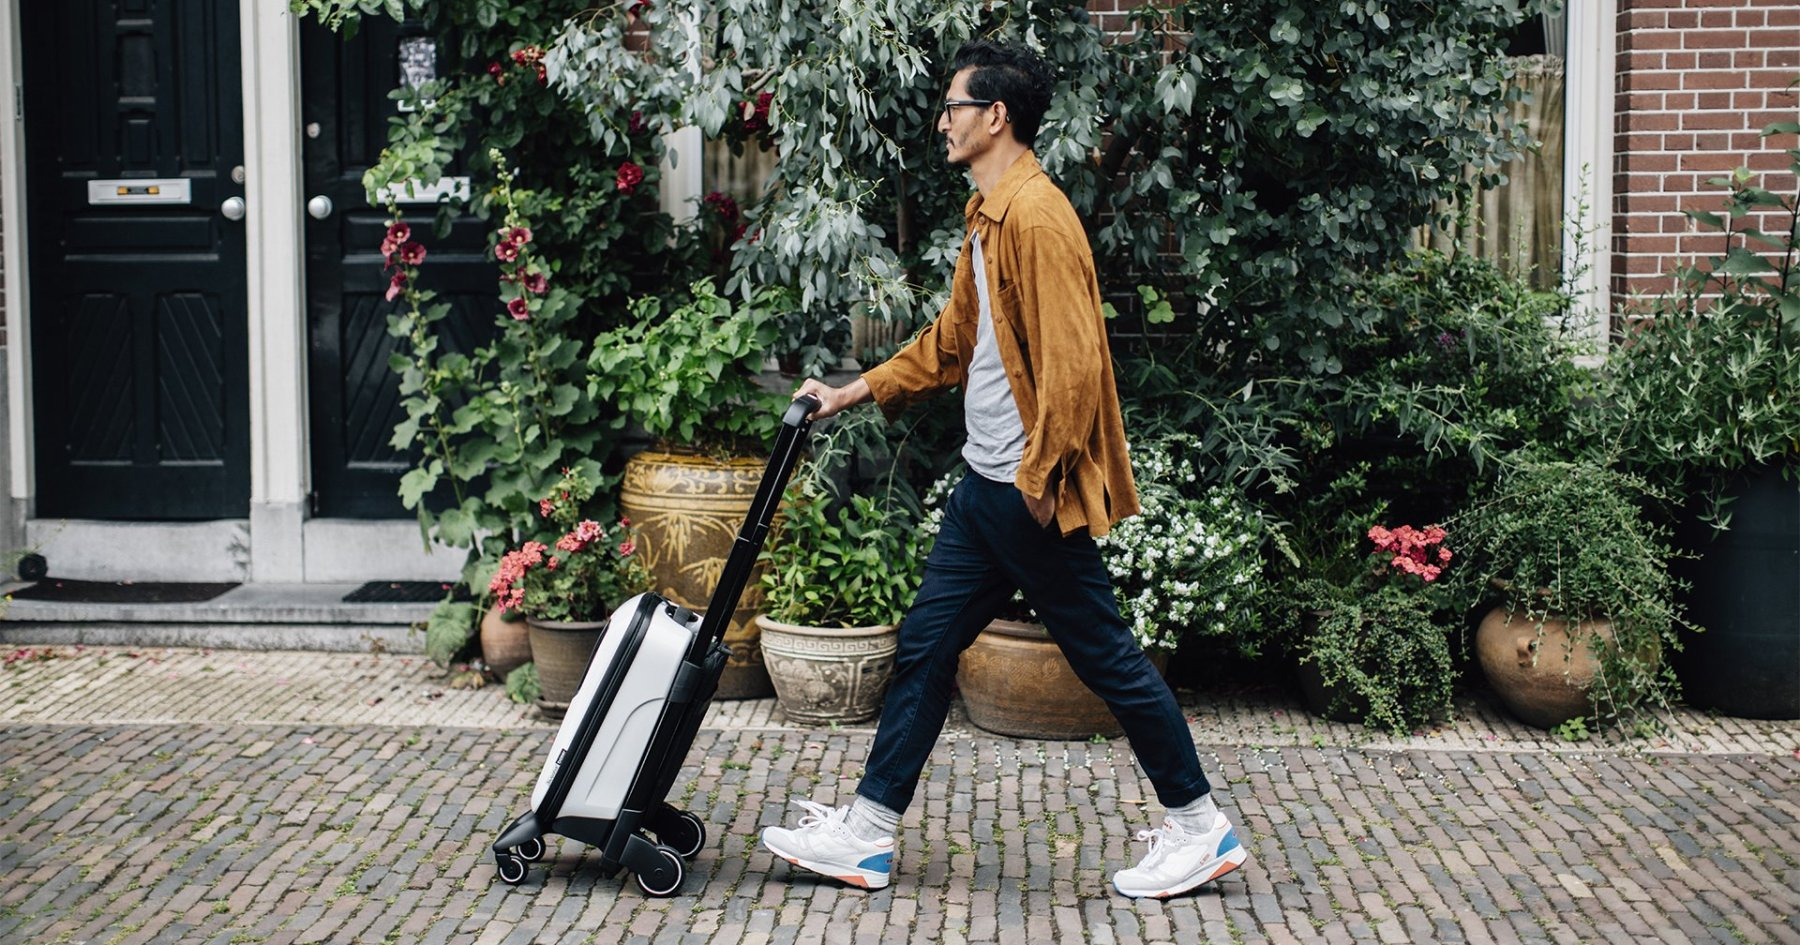 This Modular Luggage Makes for Ridiculously Easy Travel